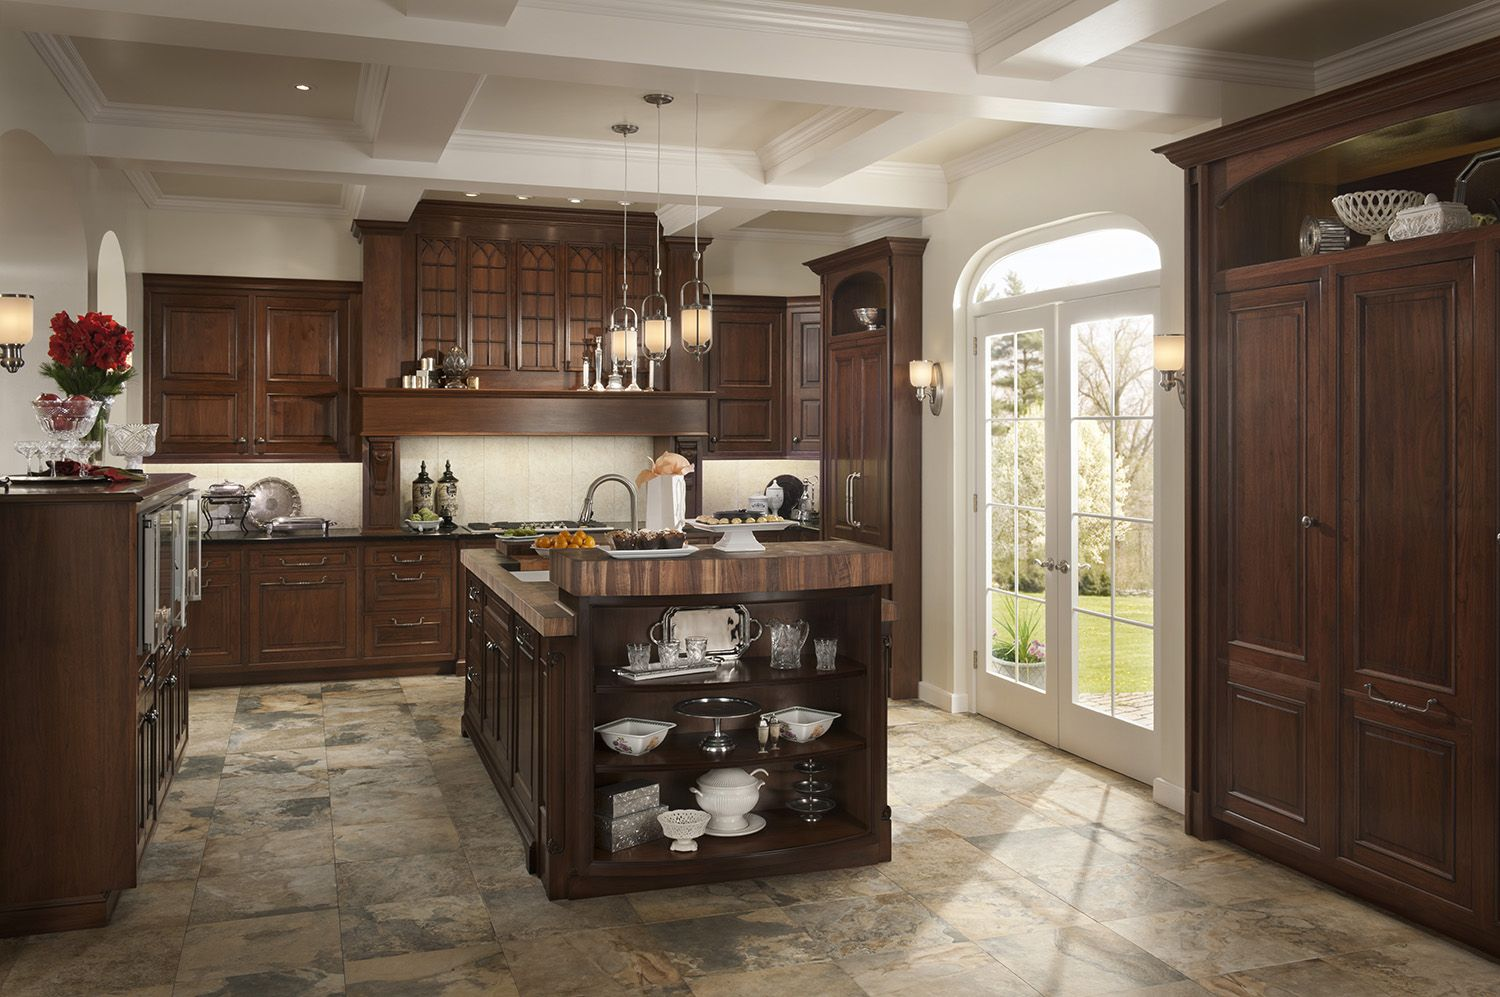 Elegant Traditions Kitchen By Woodmode Shown In Sable And Wall Street Finishes On Walnut Wood Mode Kitchen Traditional Kitchen